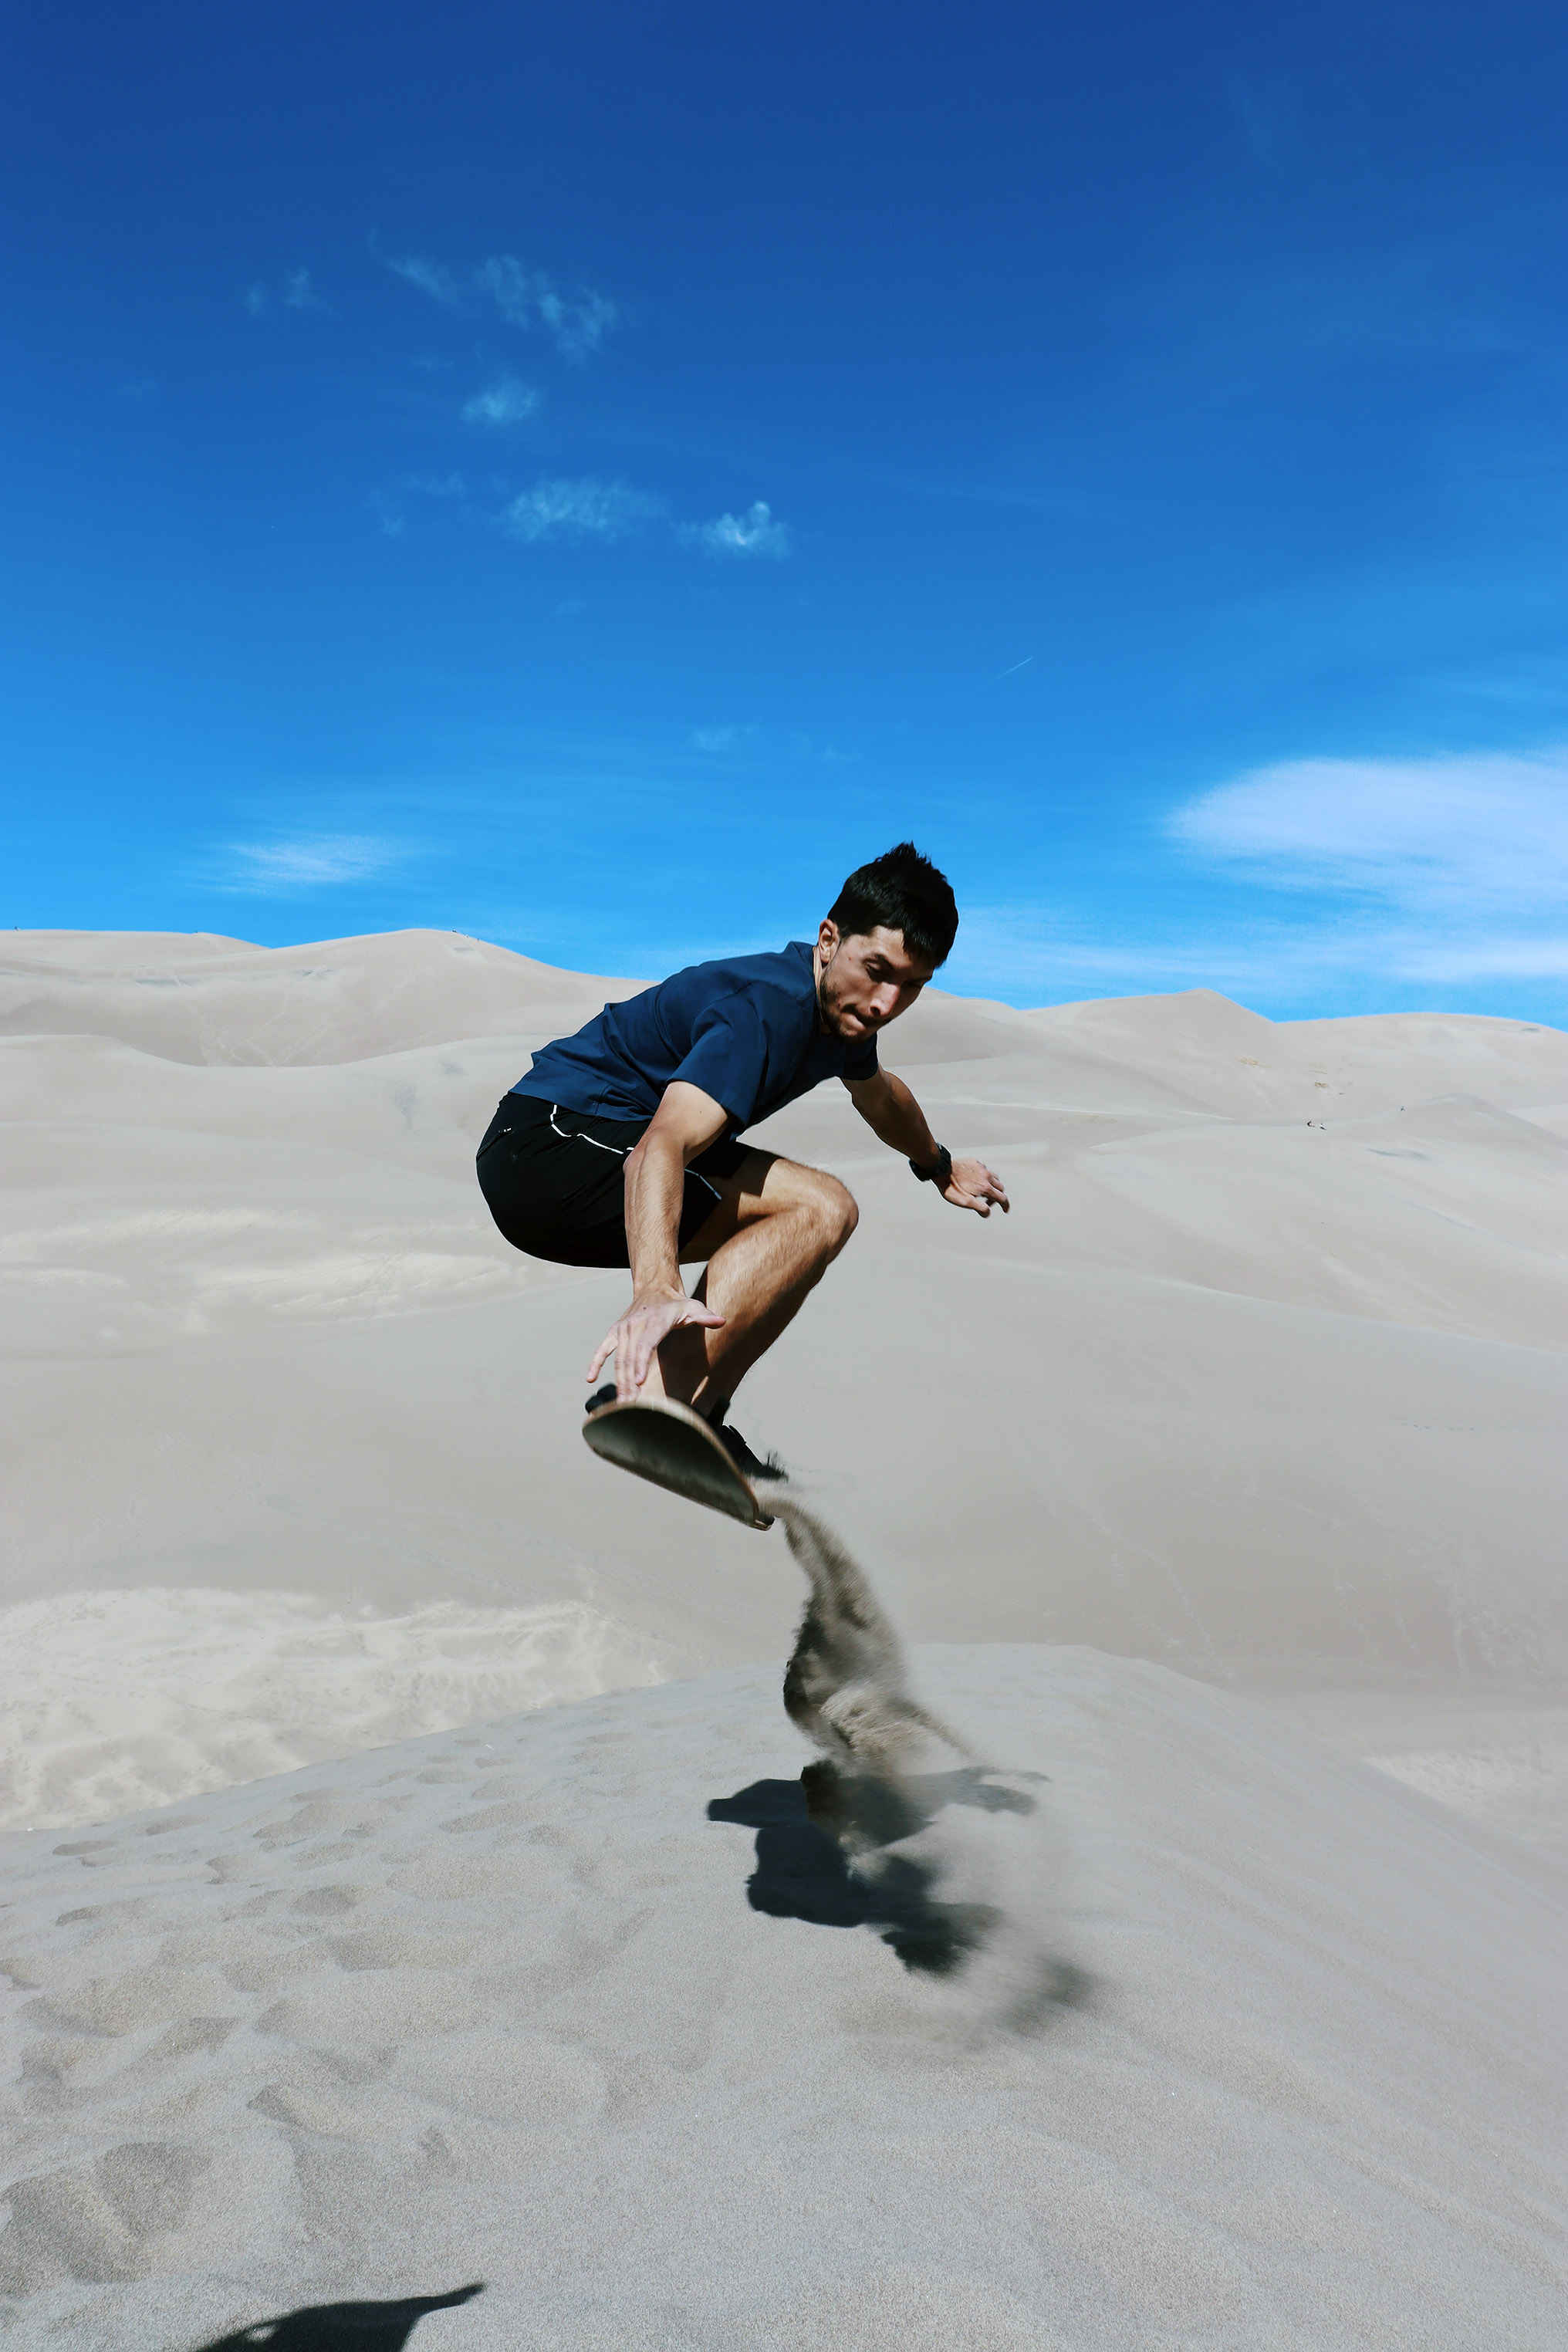 Madi Lynch won the Friends, Family & Fun category for this photo taken in Great Sand Dunes National Park and Preserve in southern Colorado.